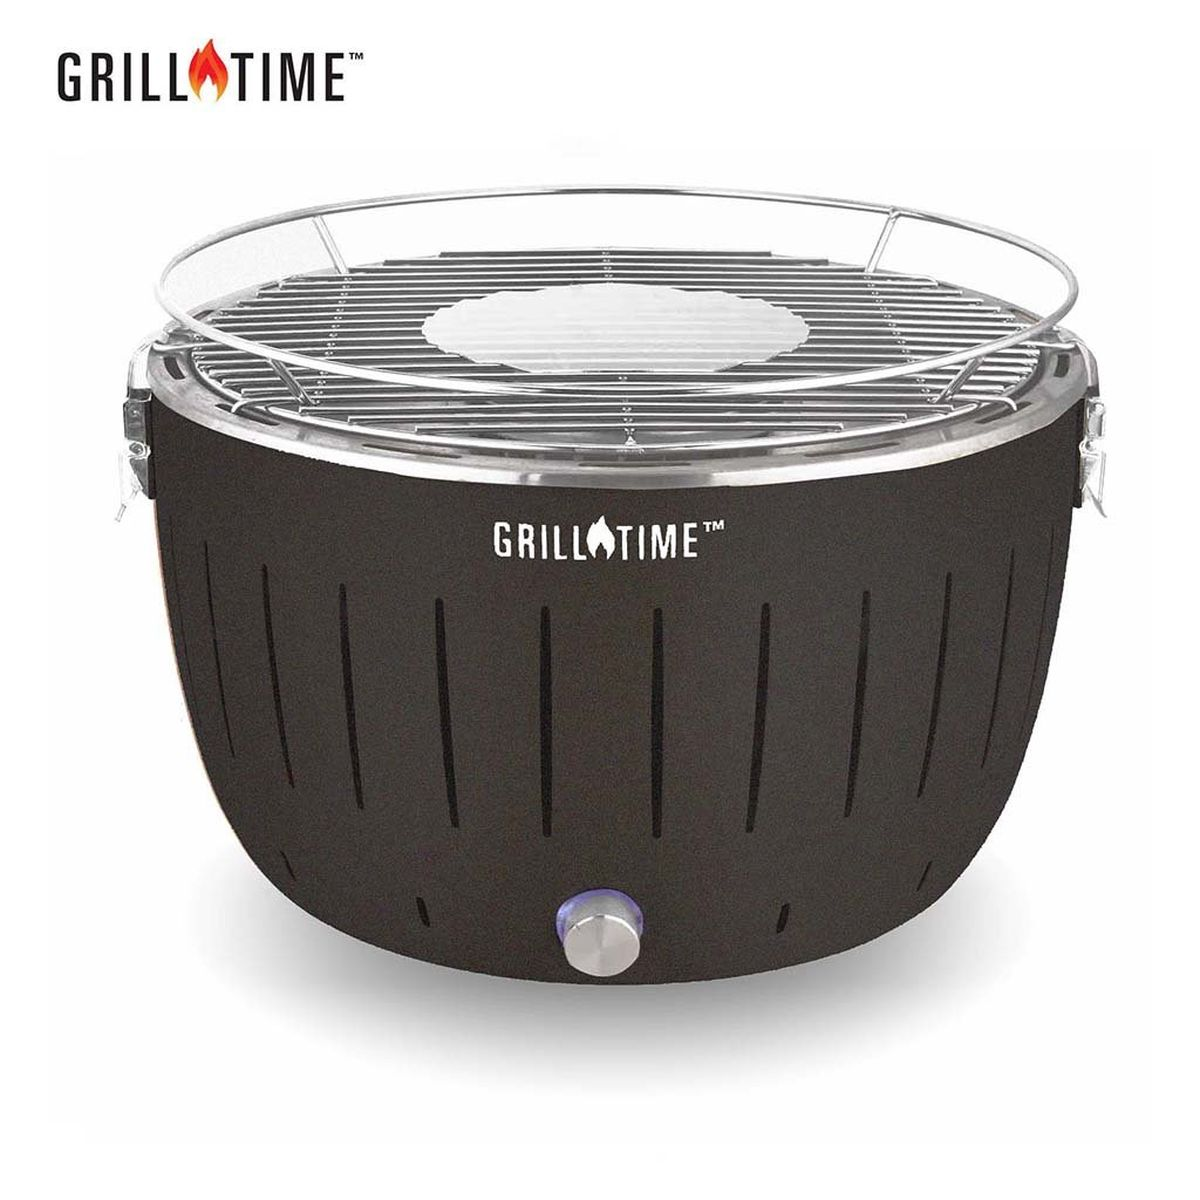 Grill Time Tailgater GT Regular Pack Portable Charcoal Grill - Gray